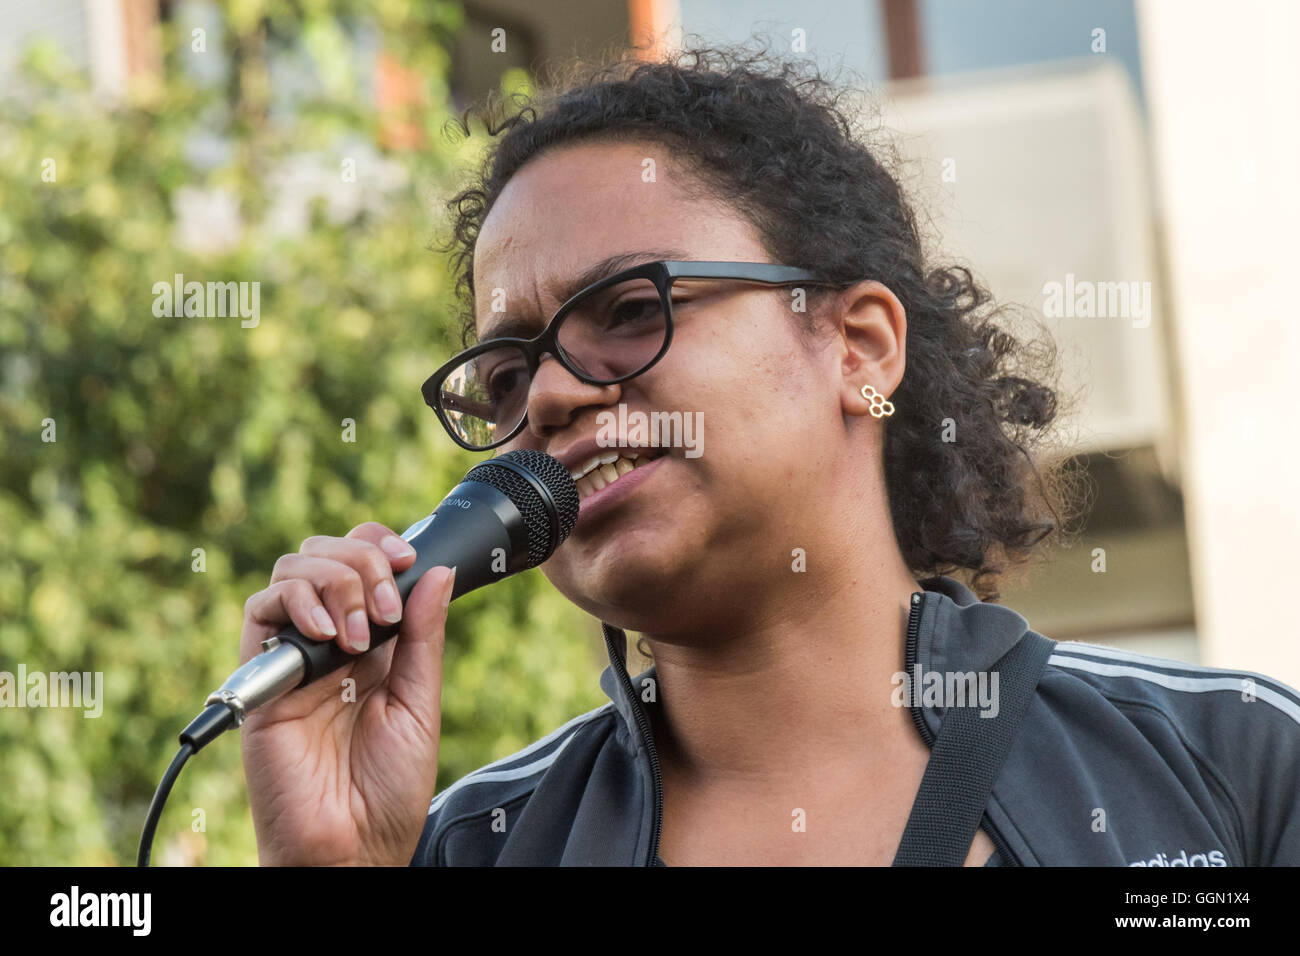 London, UK. 5th Aug, 2016. Antonia Bright of Movement for Justice speaks in Altab Ali Park in East London about - Stock Image